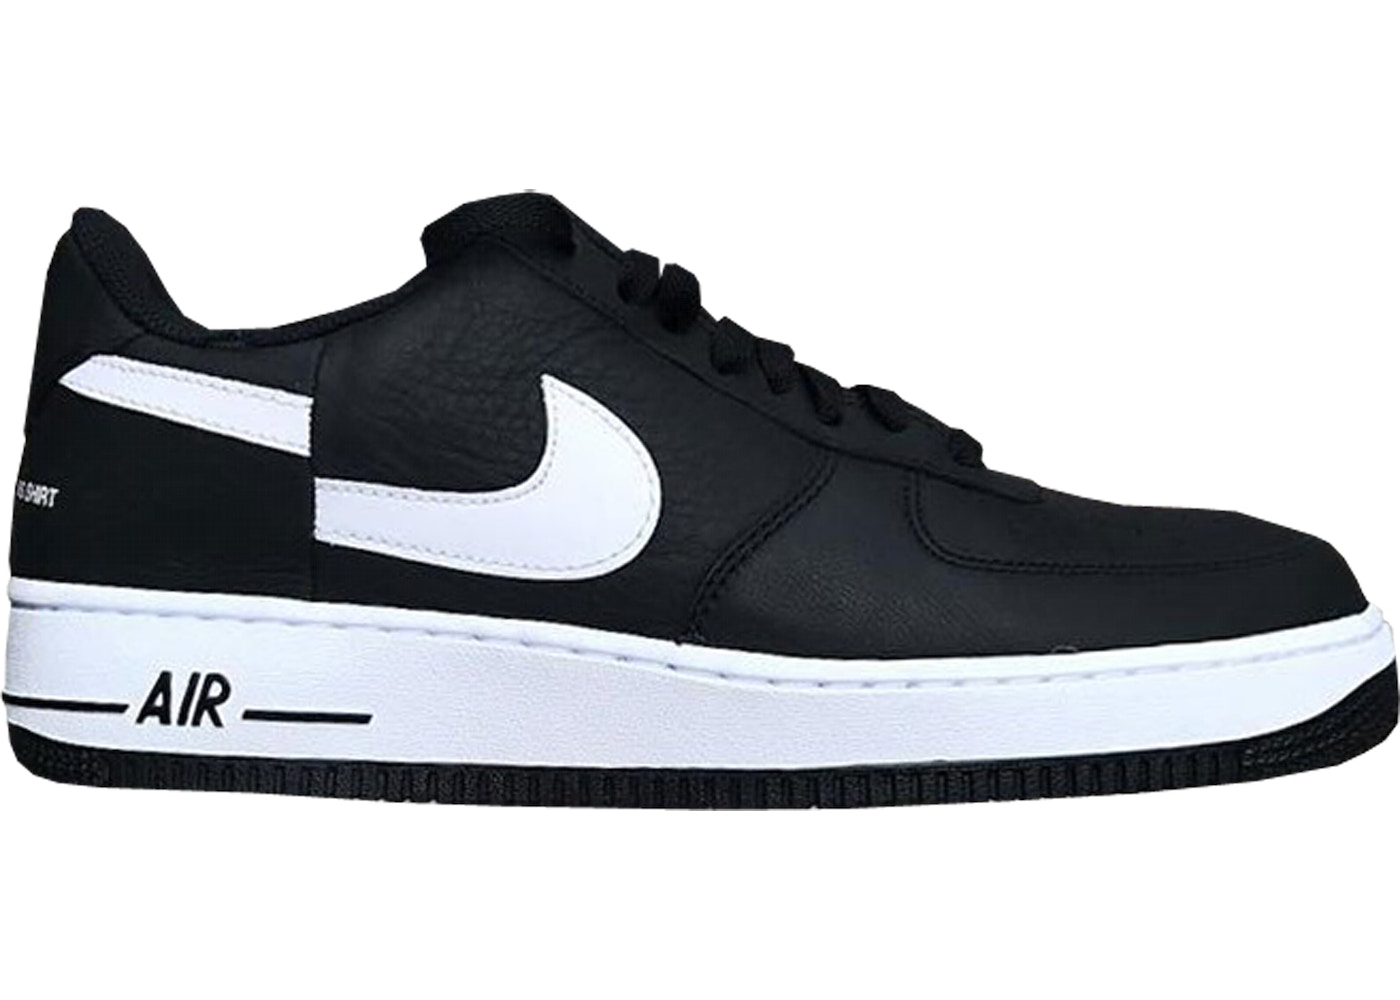 43272c128528a HypeAnalyzer · Air Force 1 Low Supreme x Comme des Garcons (2018)